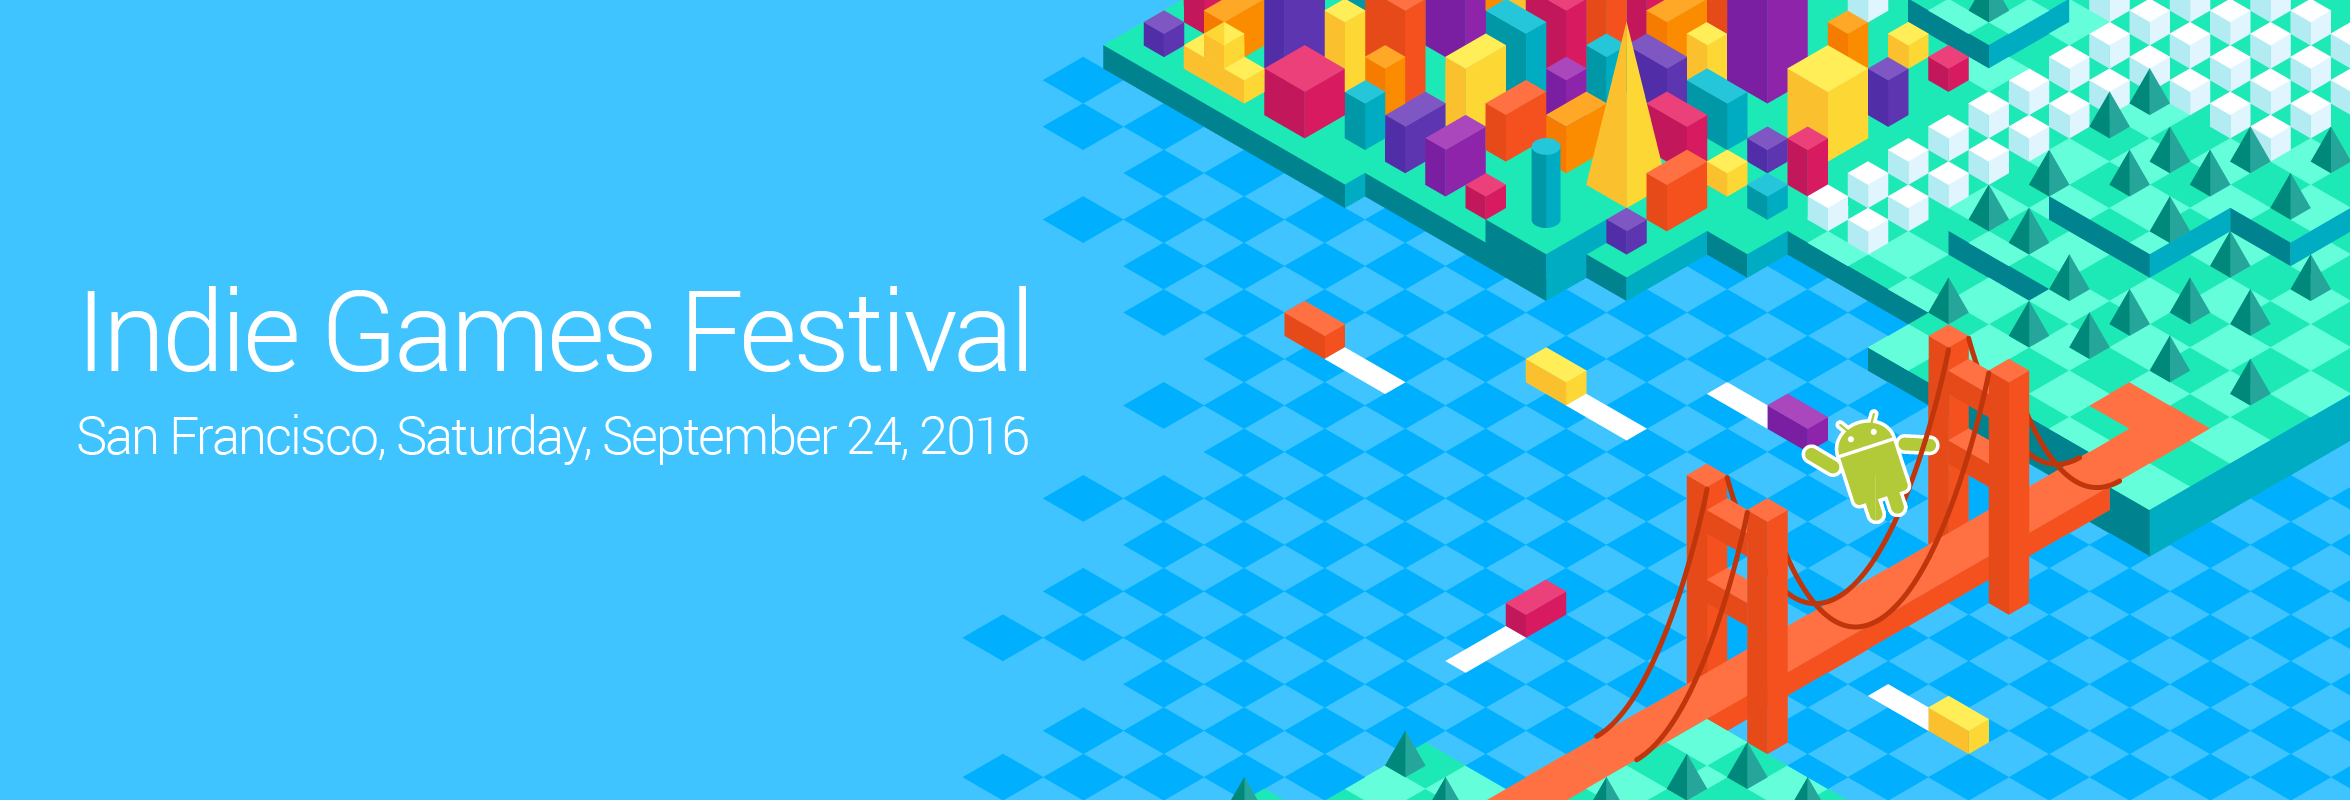 Indie_Games_Festival_Full_+Banner_No_Logo_2350x800